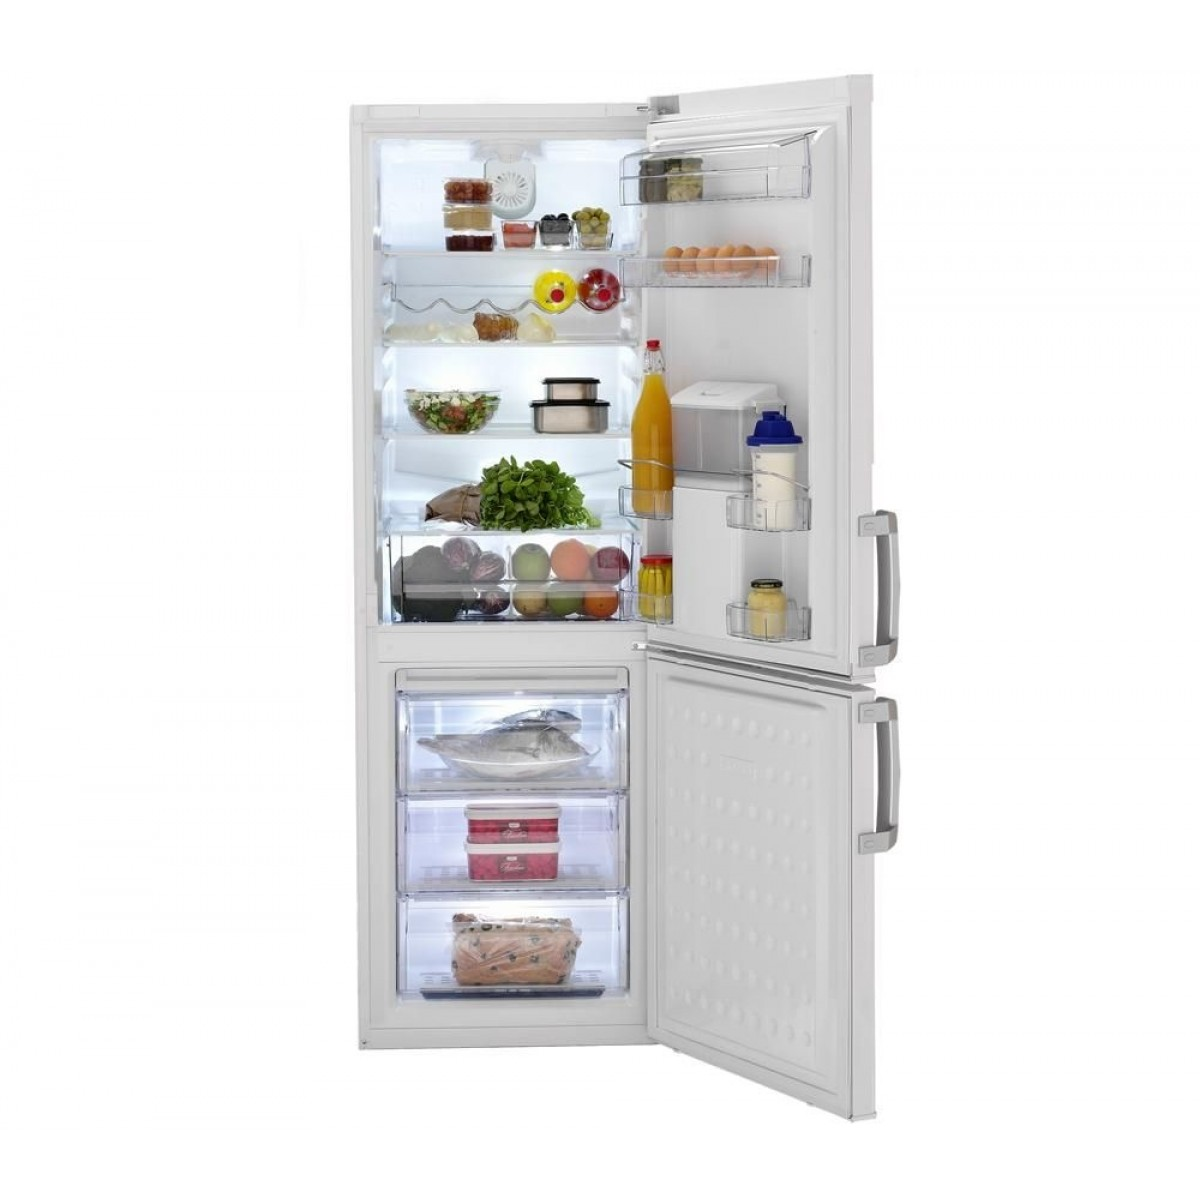 refrigerateur combin beko de 250 litres avec distributeur d 39 eau fraiche ch134100d. Black Bedroom Furniture Sets. Home Design Ideas